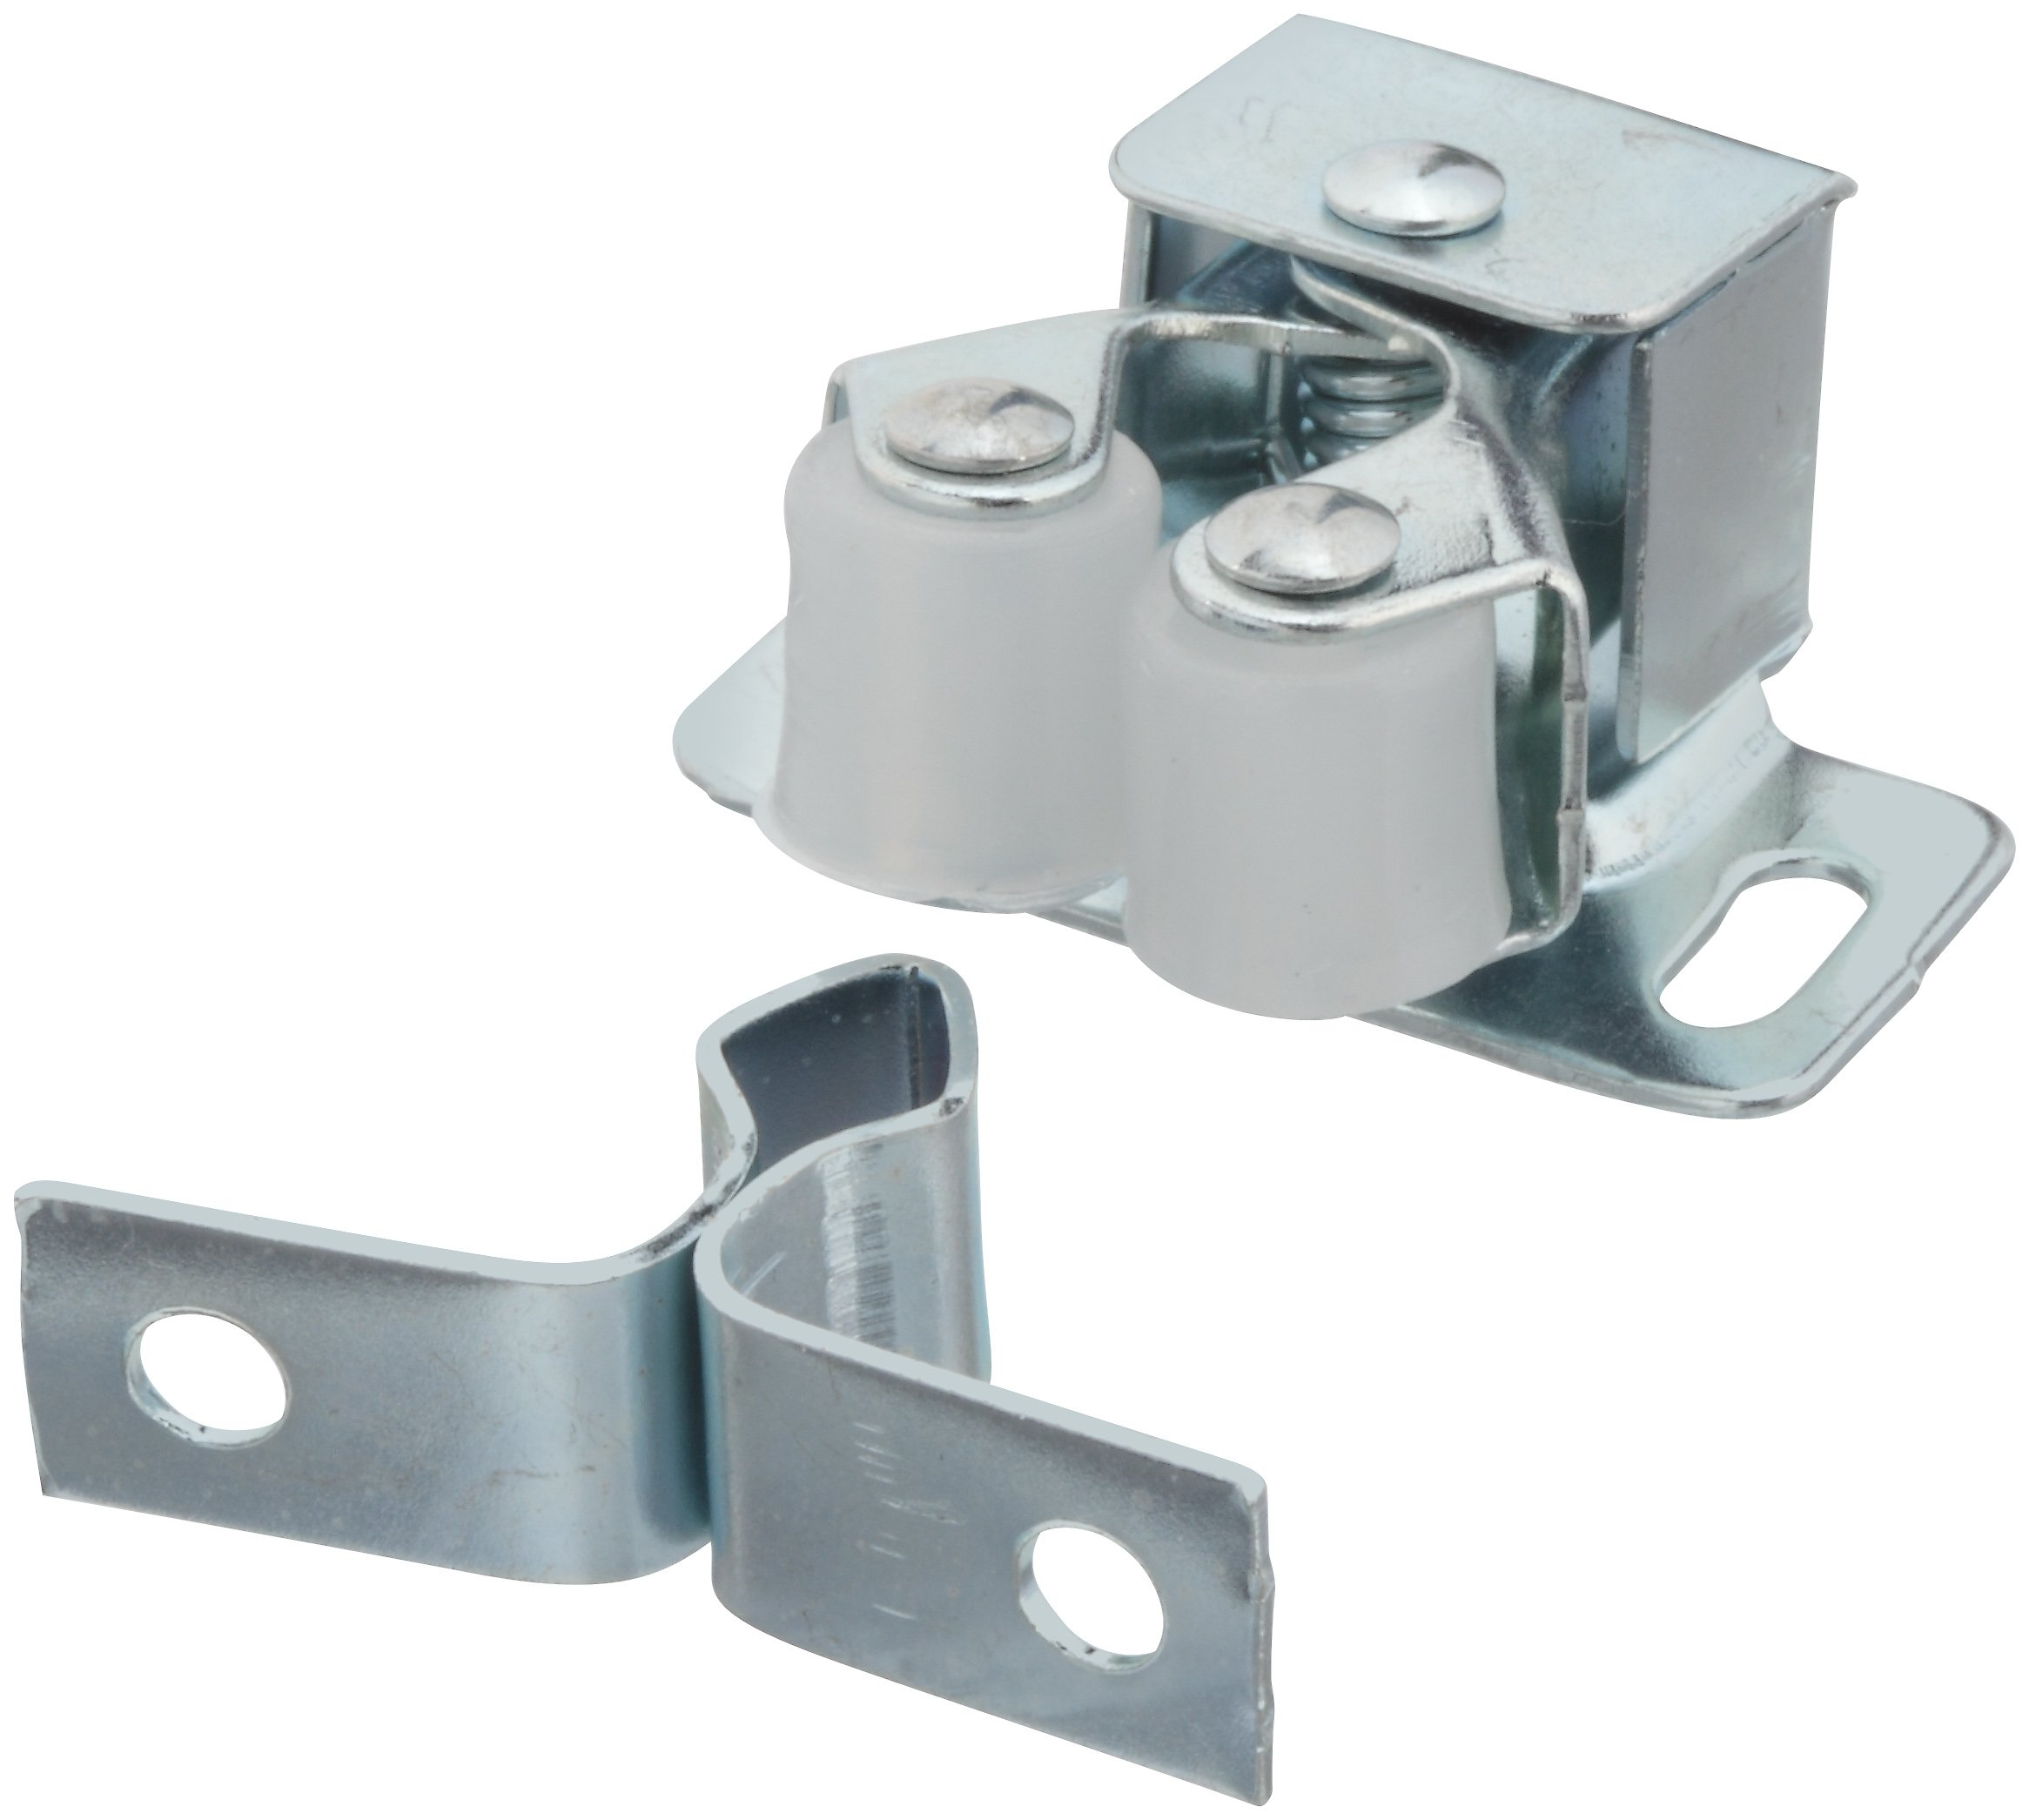 National Hardware N710-502 Cabinet Catches